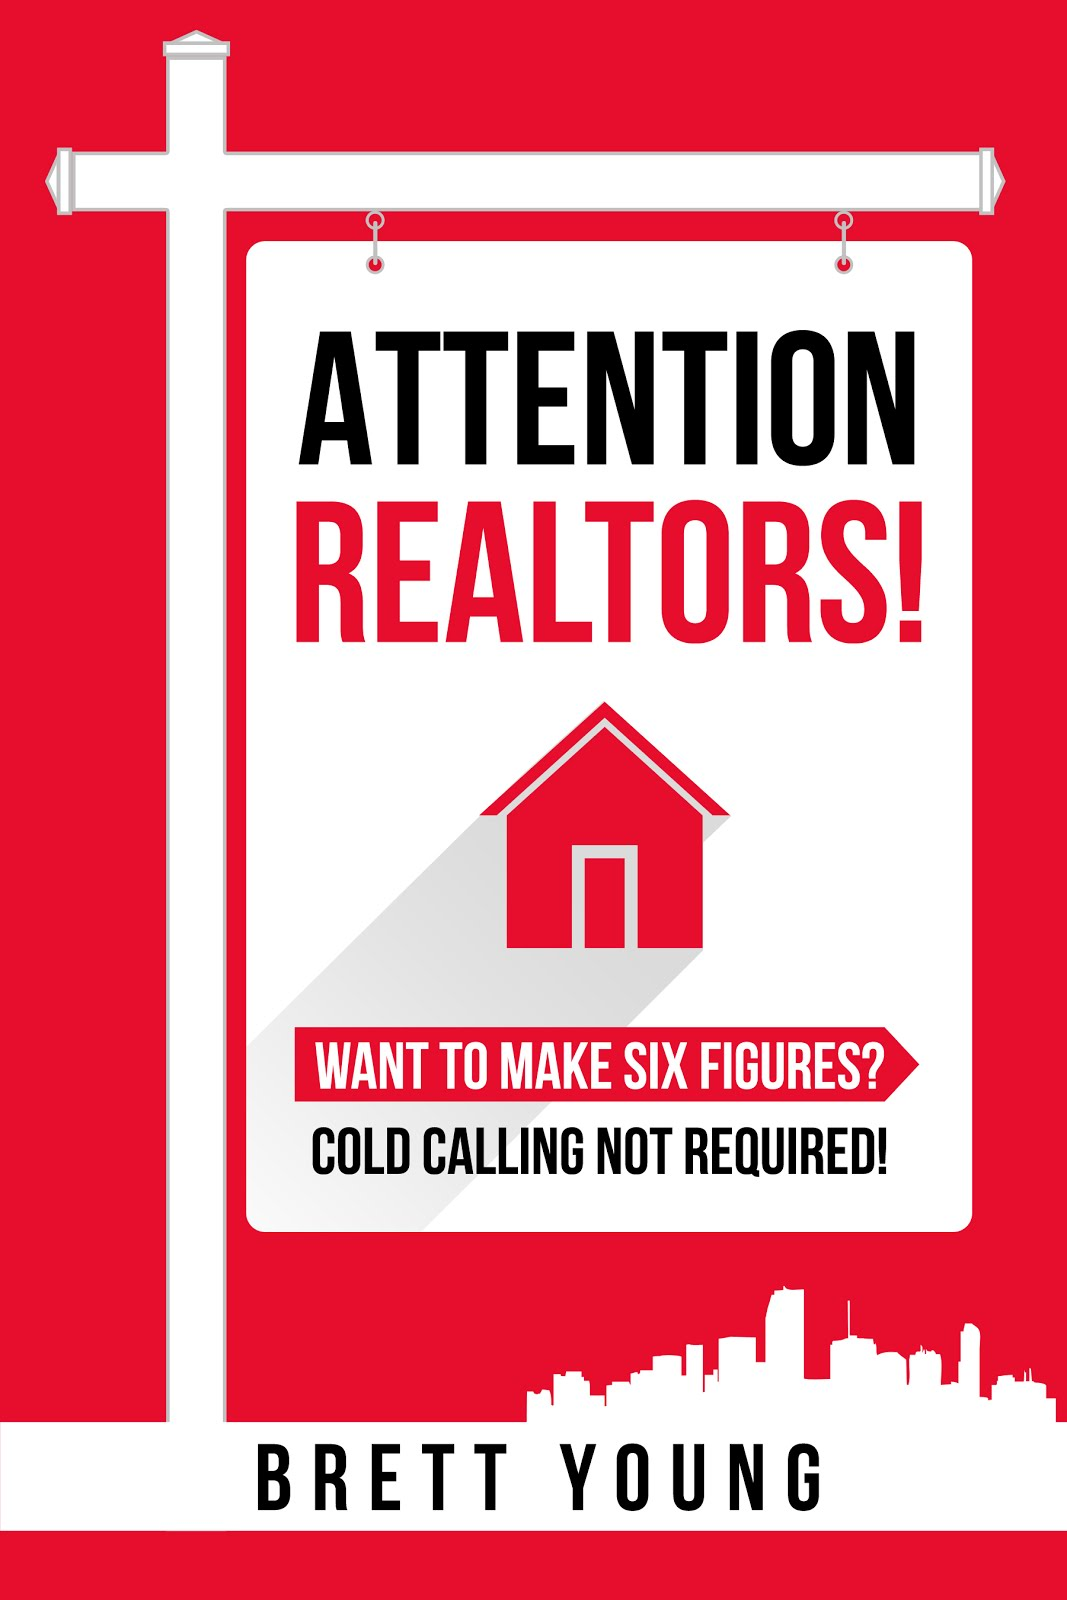 Attention Realtors!